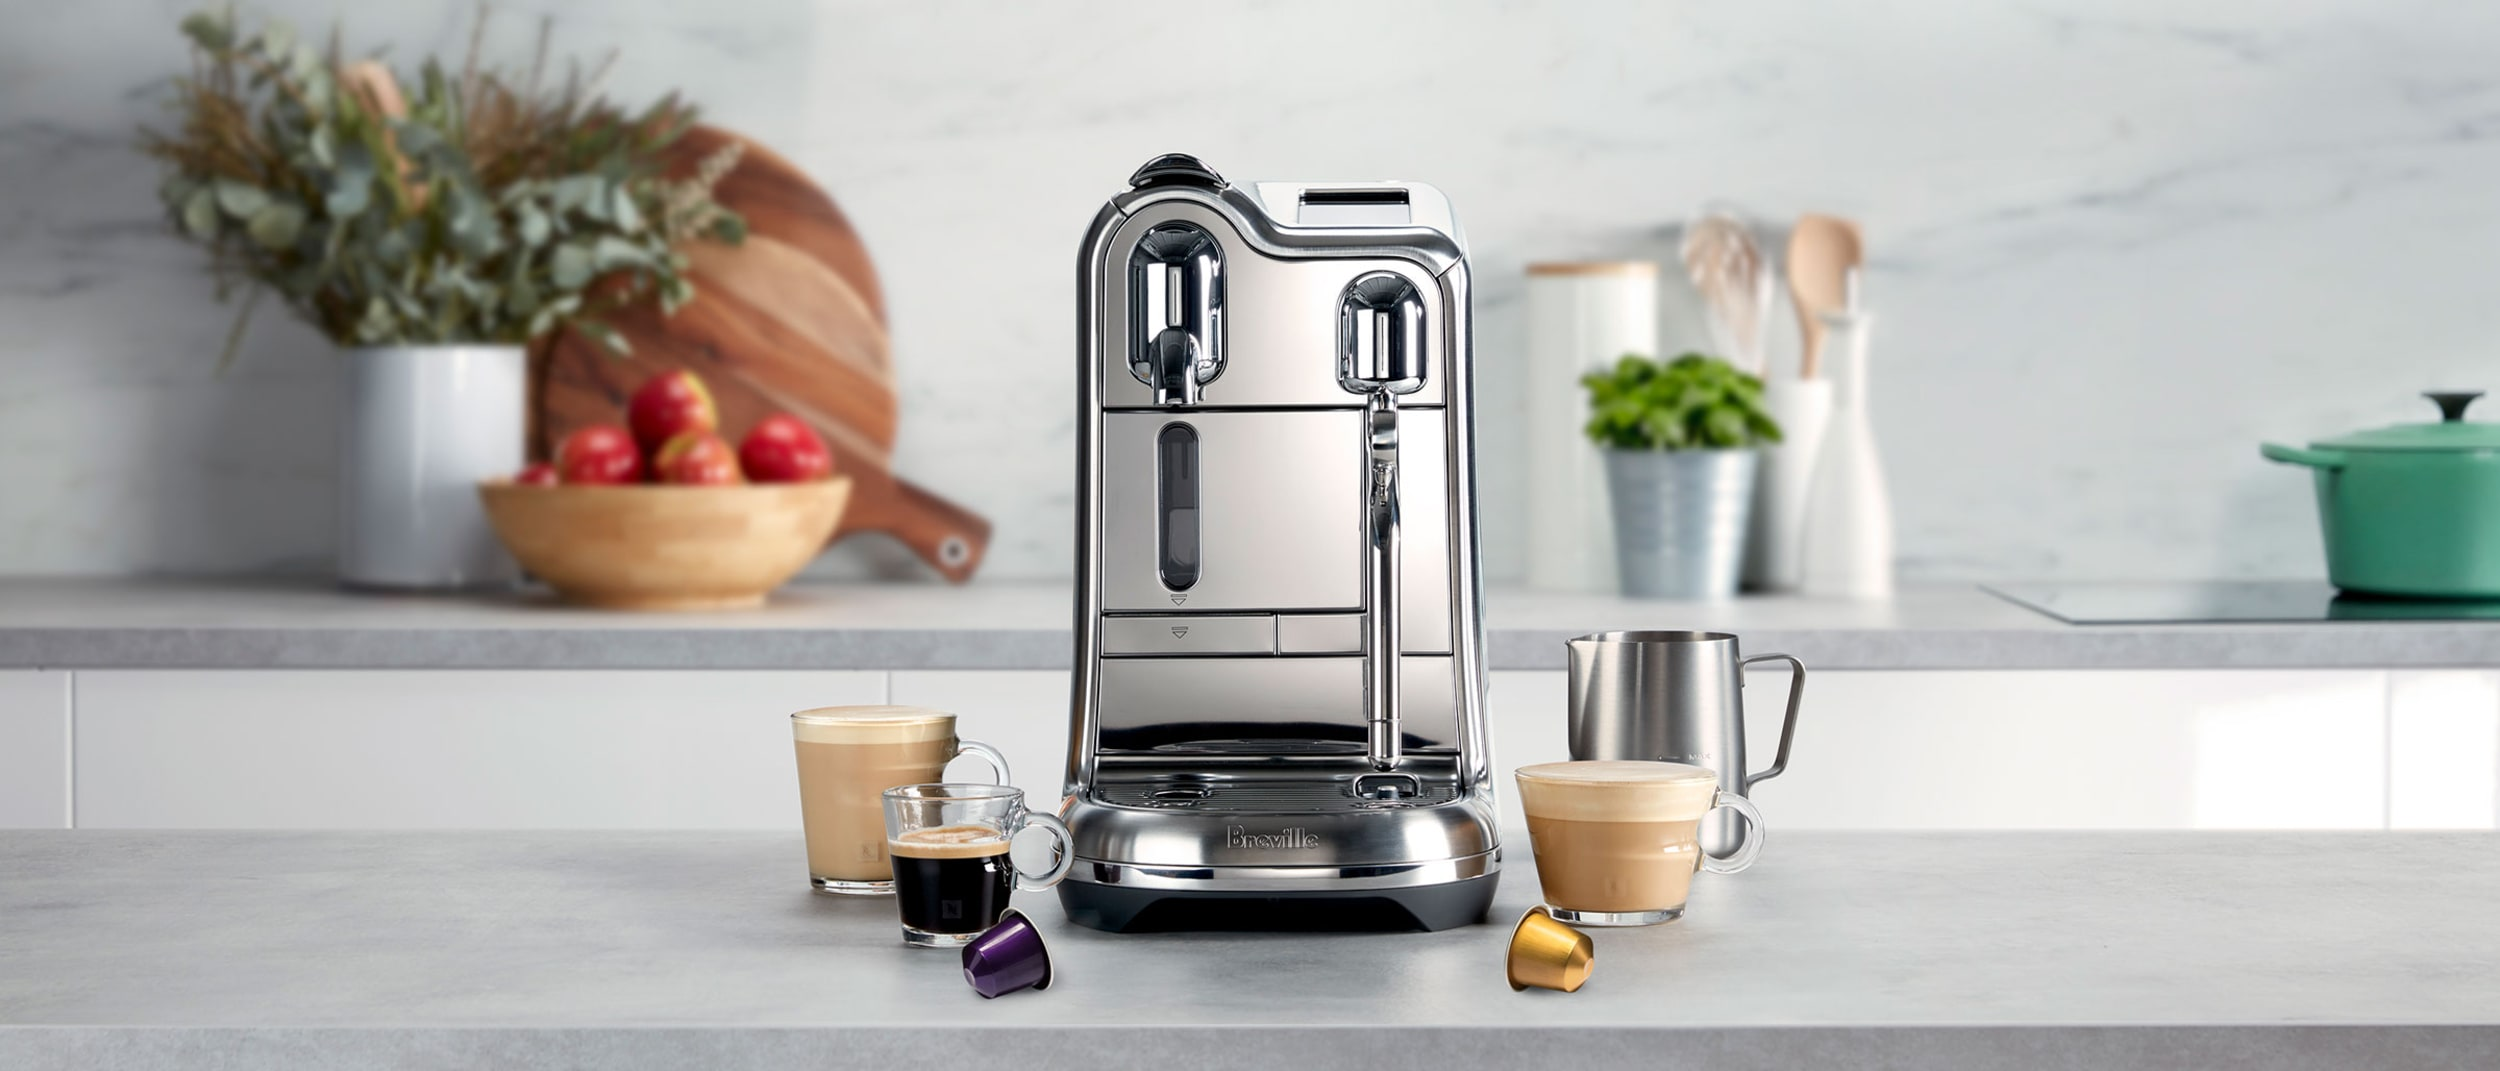 Nespresso: Up to $80 of coffee credit